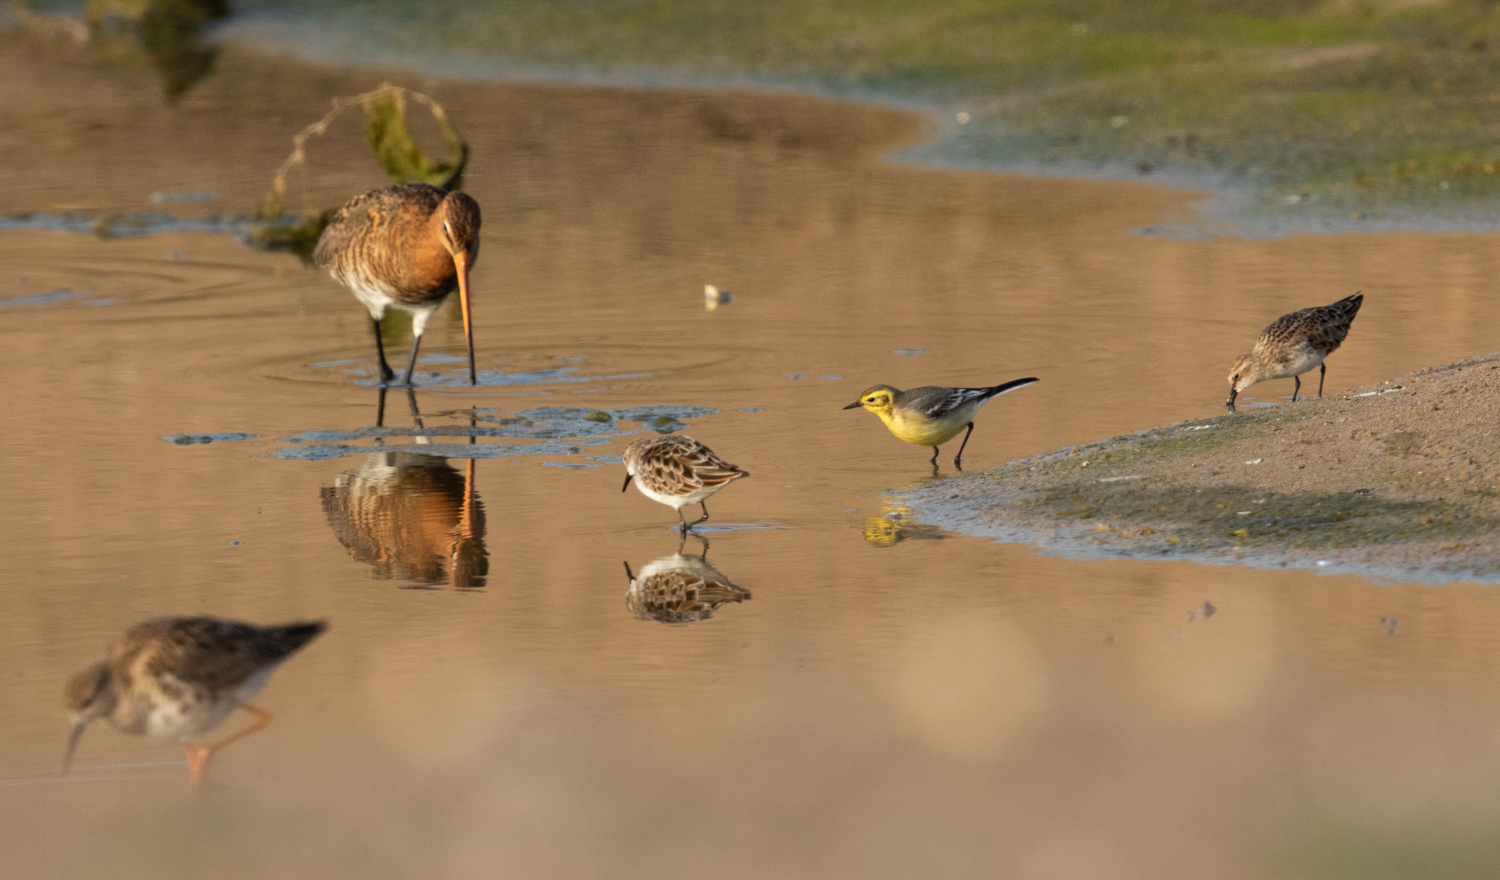 An excellent size comparison of Ruff, Black-tailed Godwit, Little Stint, with Citrine Wagtail as the yardstick.